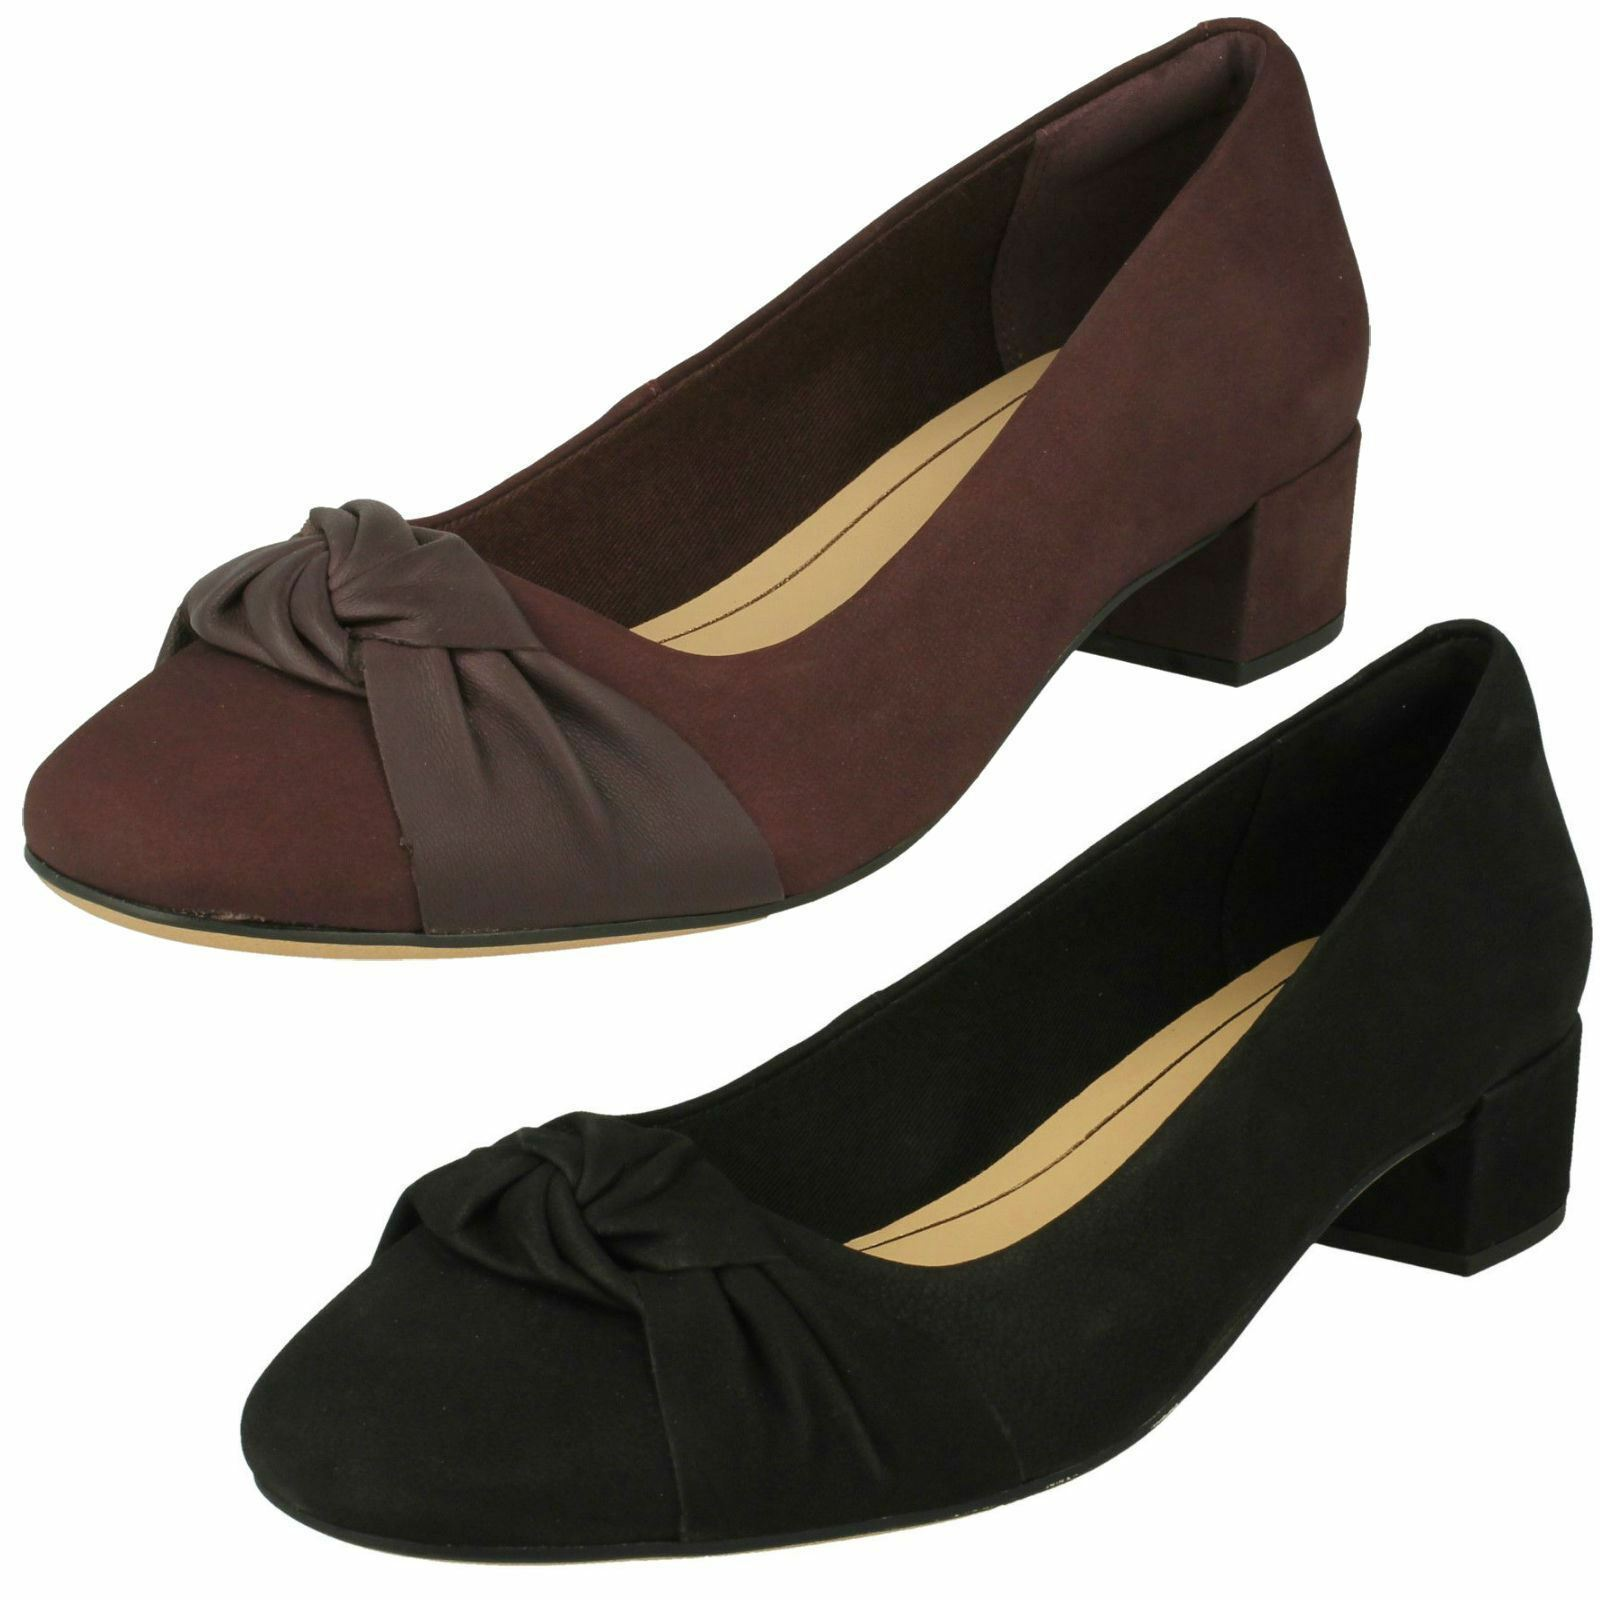 Clarks Orabella Lily Nubuck Leather Court Shoe